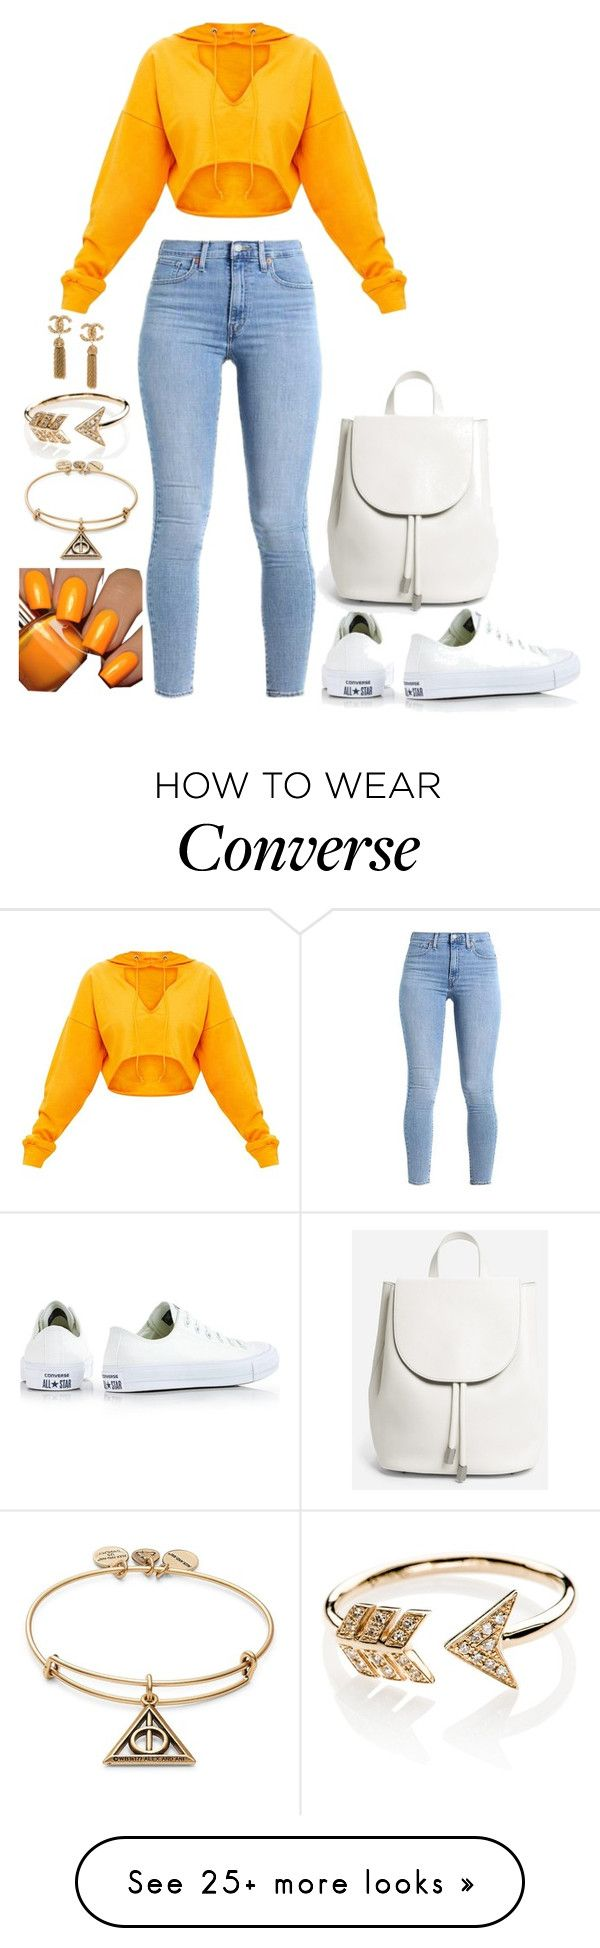 """Untitled #2185"" by social-outcast-16 on Polyvore featuring Converse, Everlane, EF Collection, Floss Gloss and Alex and Ani"